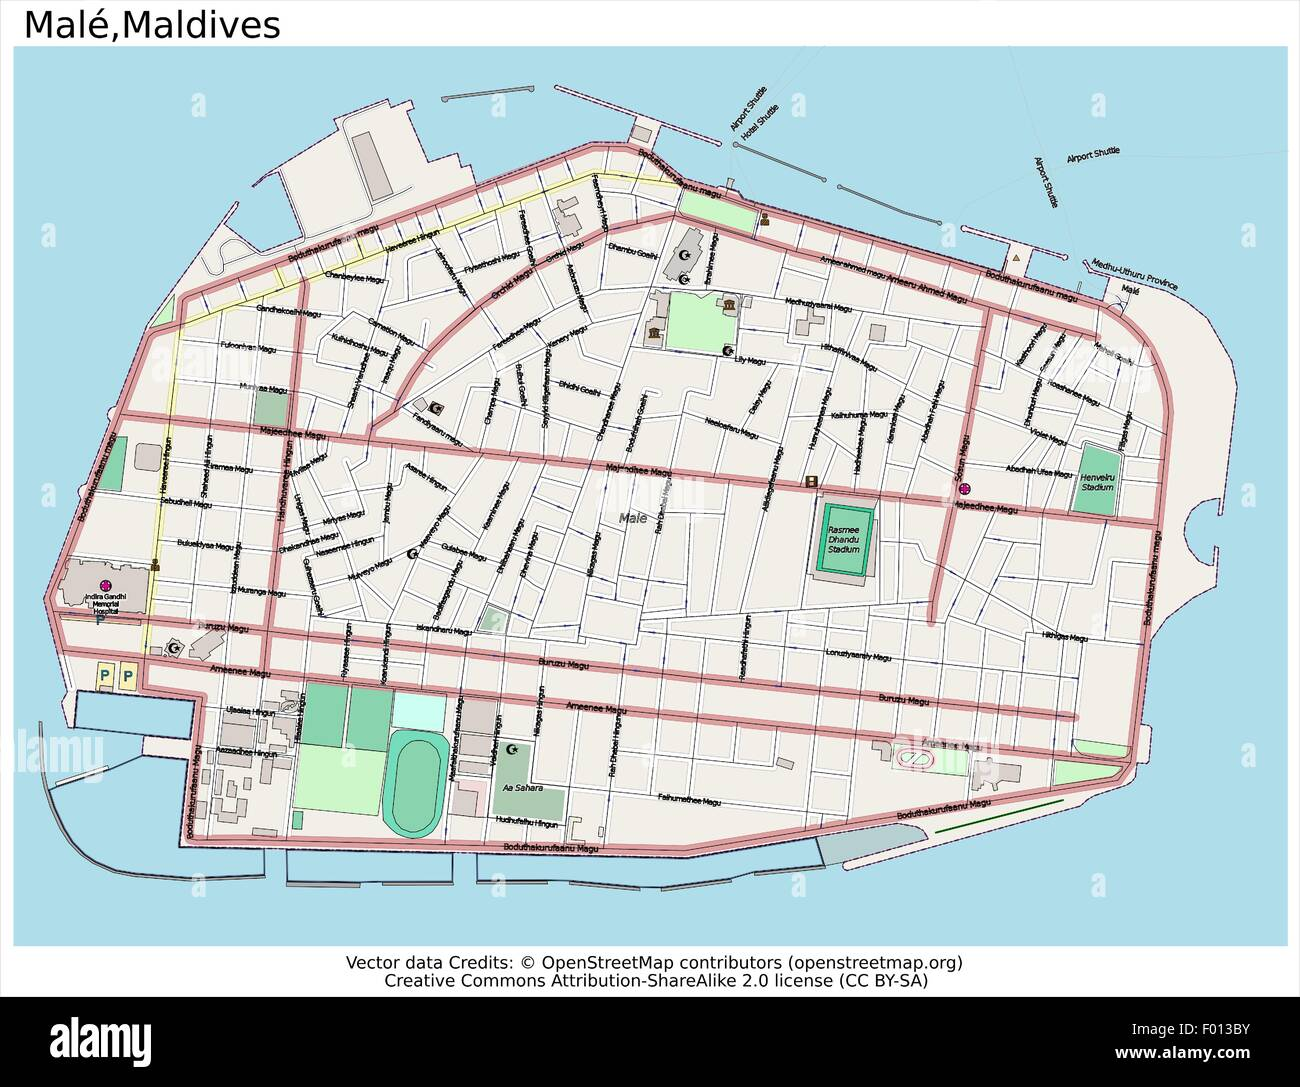 Male Maldives Area City Map Aerial View Stock Vector Art - male map